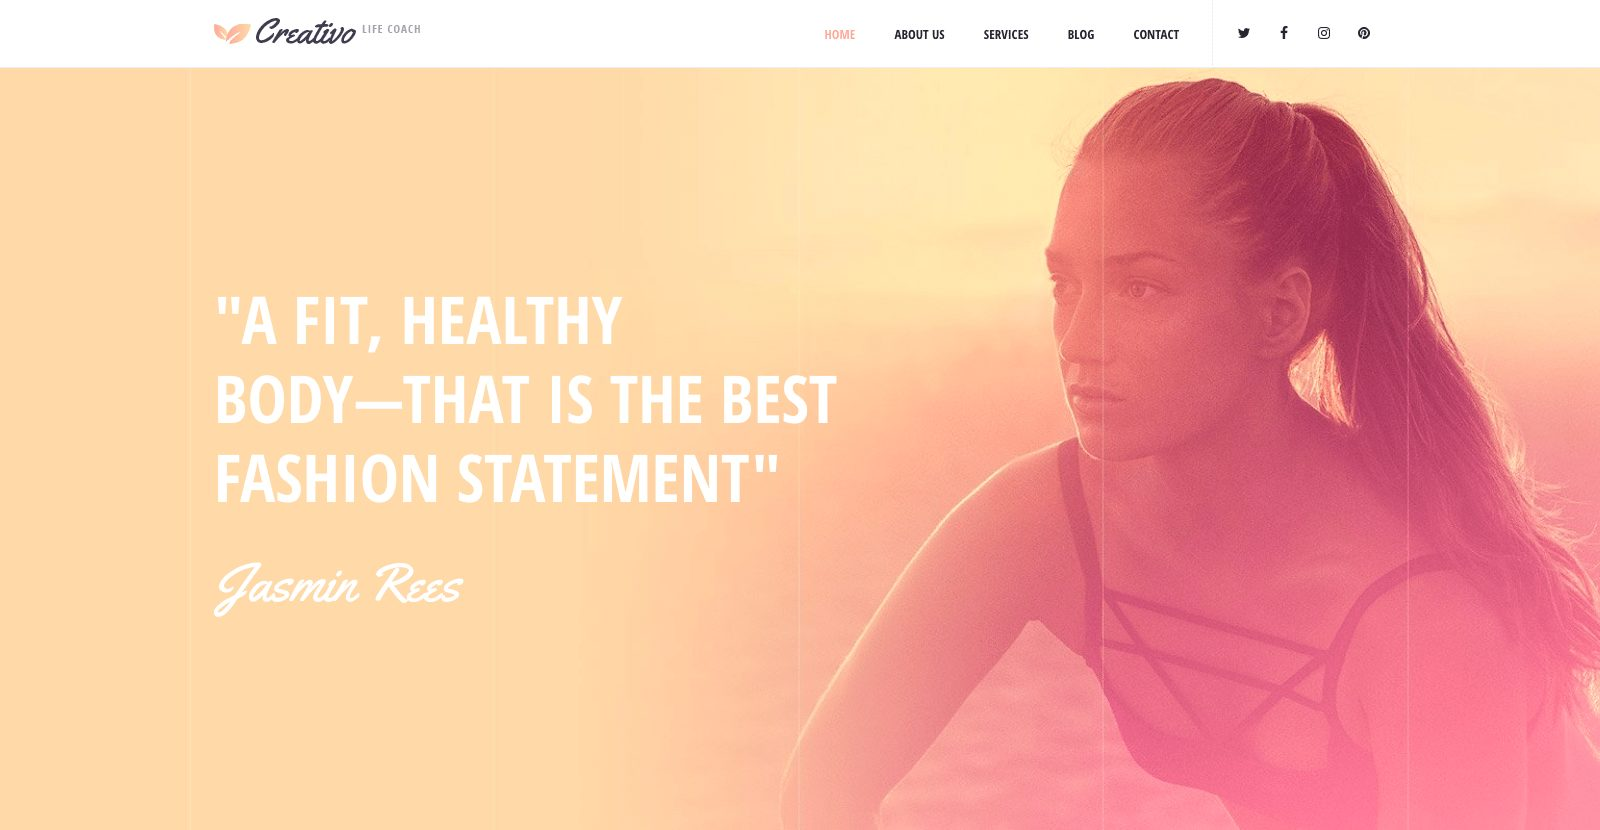 Creativo Template - Life Coach WordPress Theme